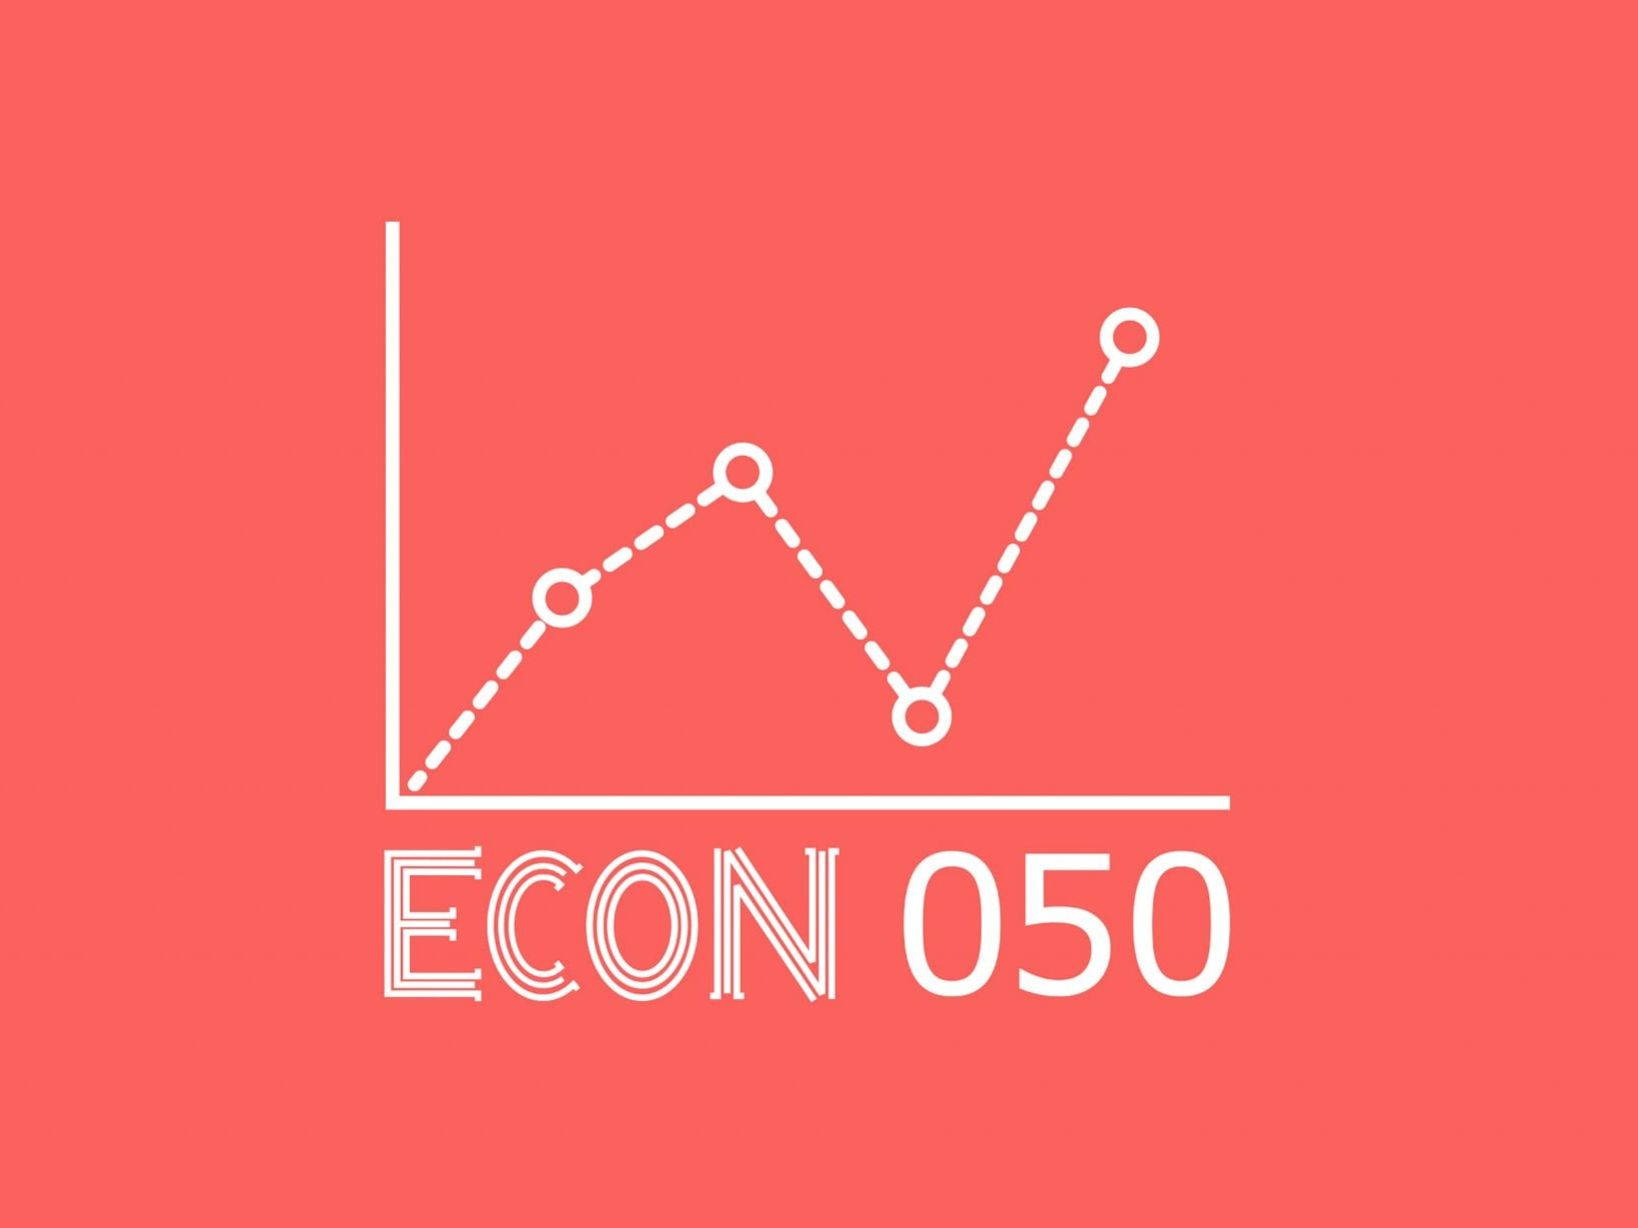 Econ 050 is a podcast on the economics and business topics that matter to the Netherlands and the wider world, made by the Faculty of Economics and Business and the Northern Times.